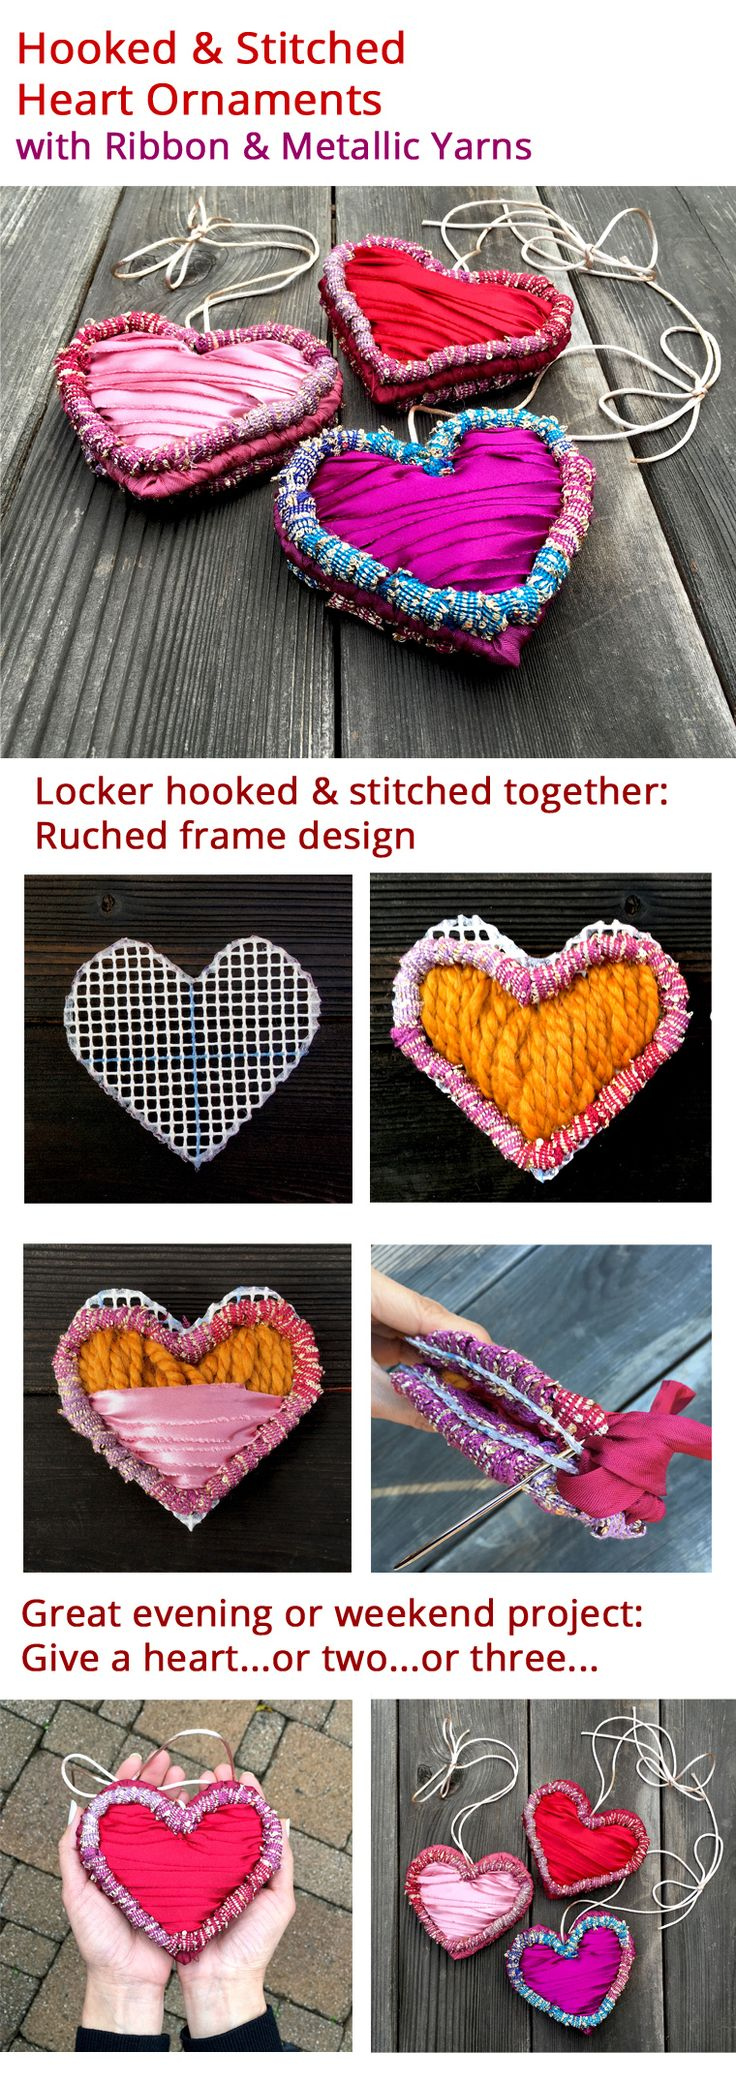 Create a vibrant and beautiful hooked and stitched heart ornament to give. Locker hooking kit includes all materials needed.